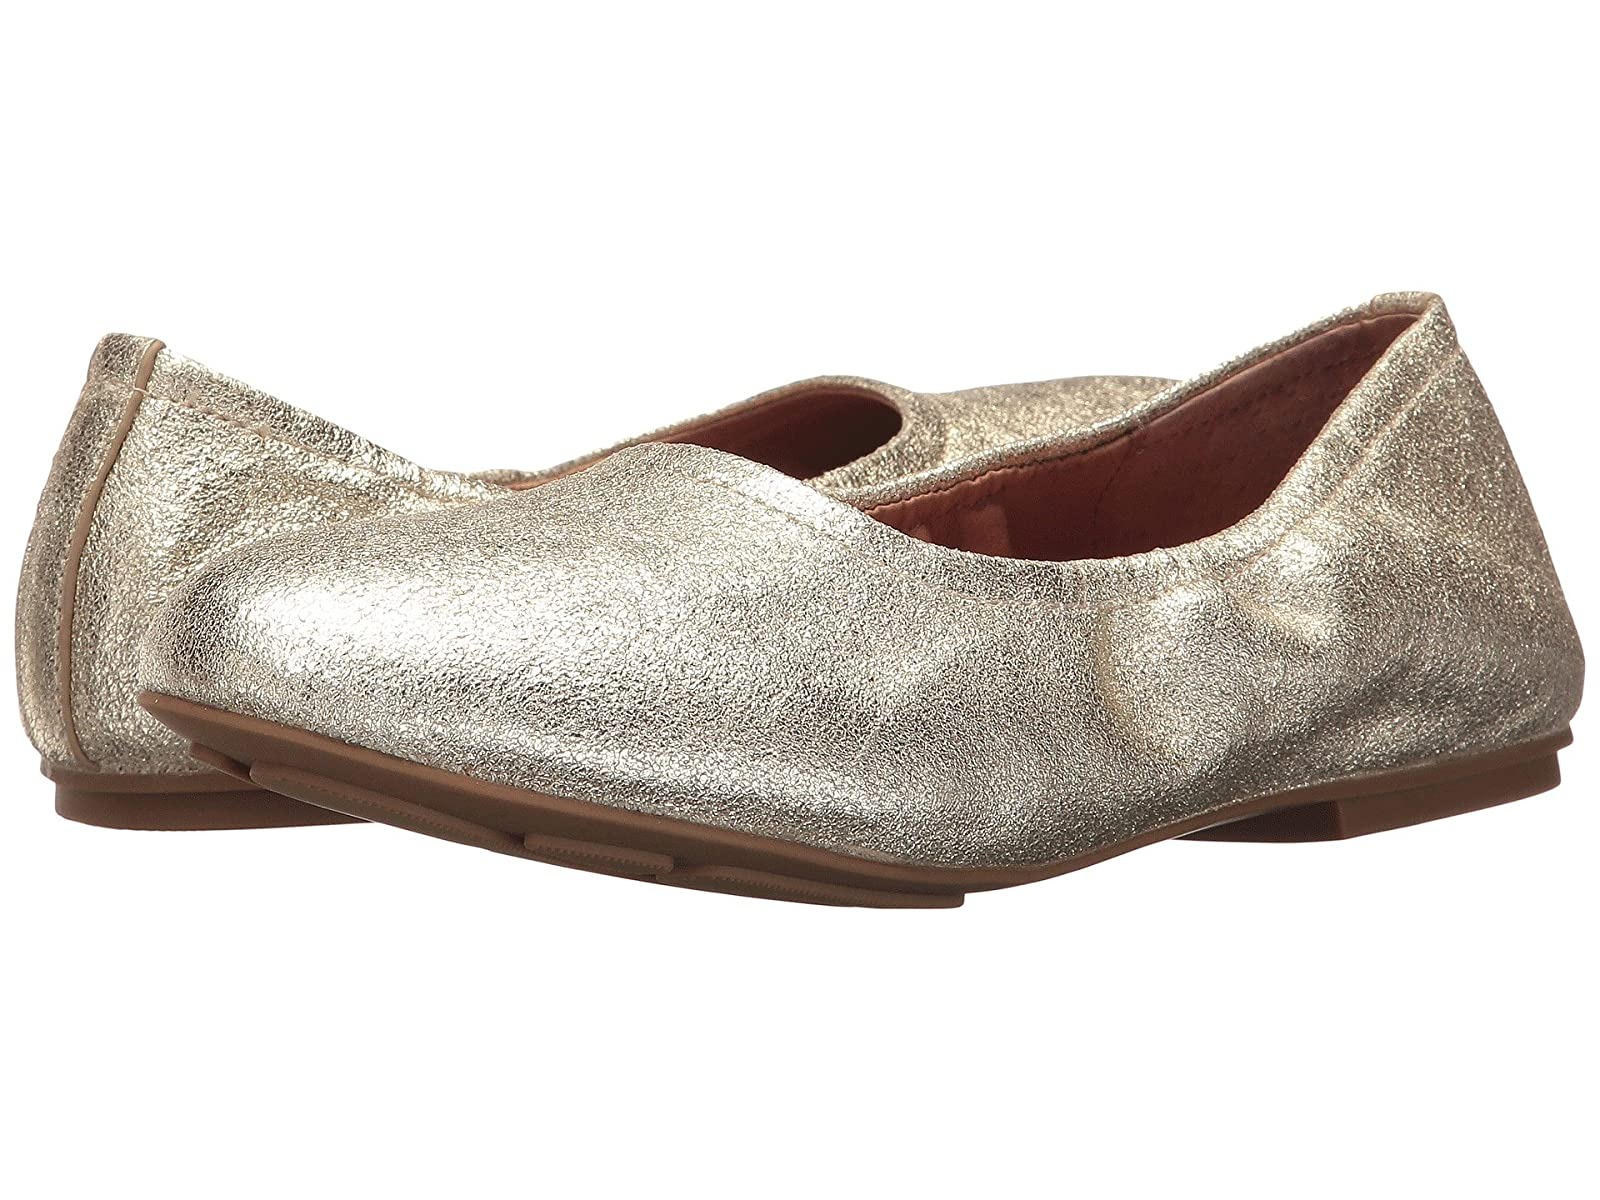 Gentle Souls by Kenneth Cole PortiaCheap and distinctive eye-catching shoes